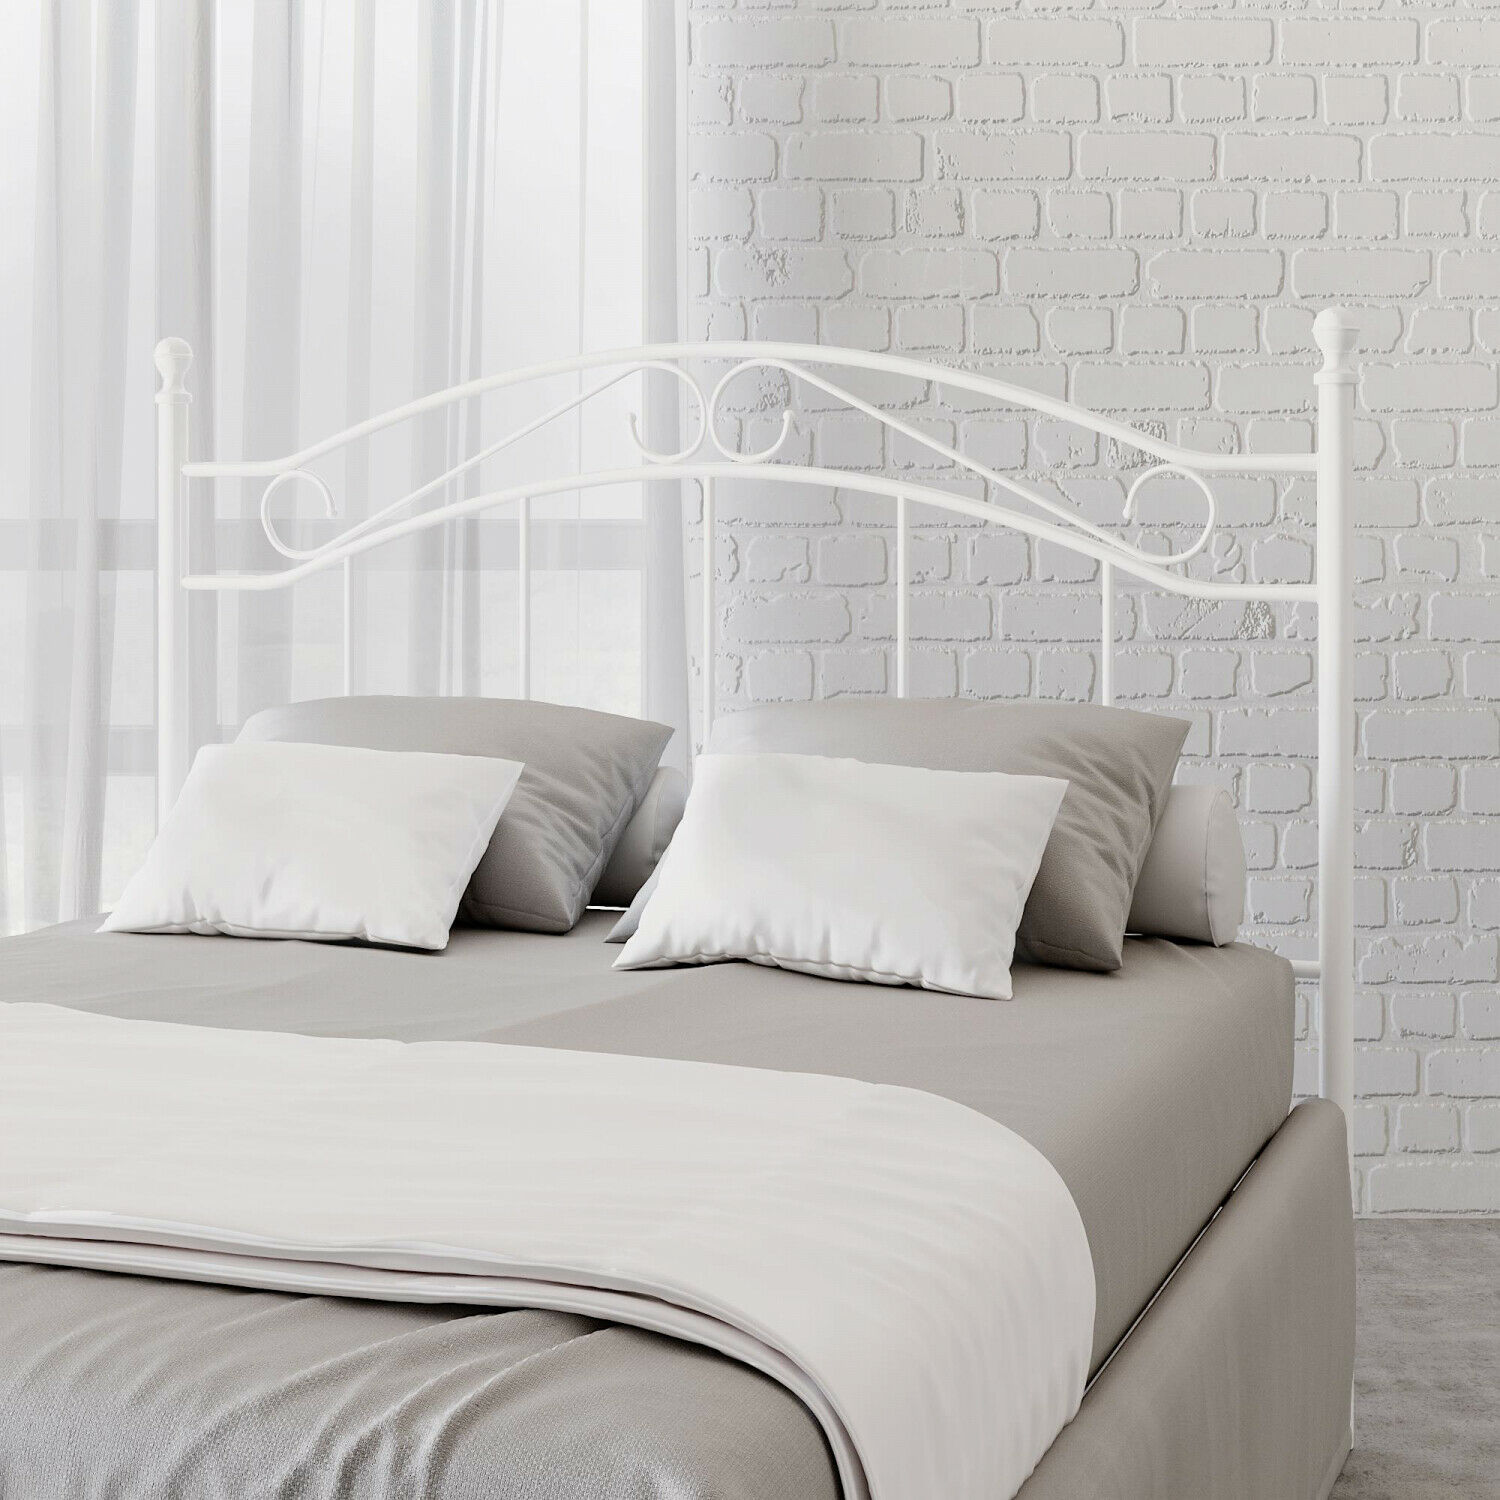 full queen size bed frame metal white bed headboard modern bedroom furniture